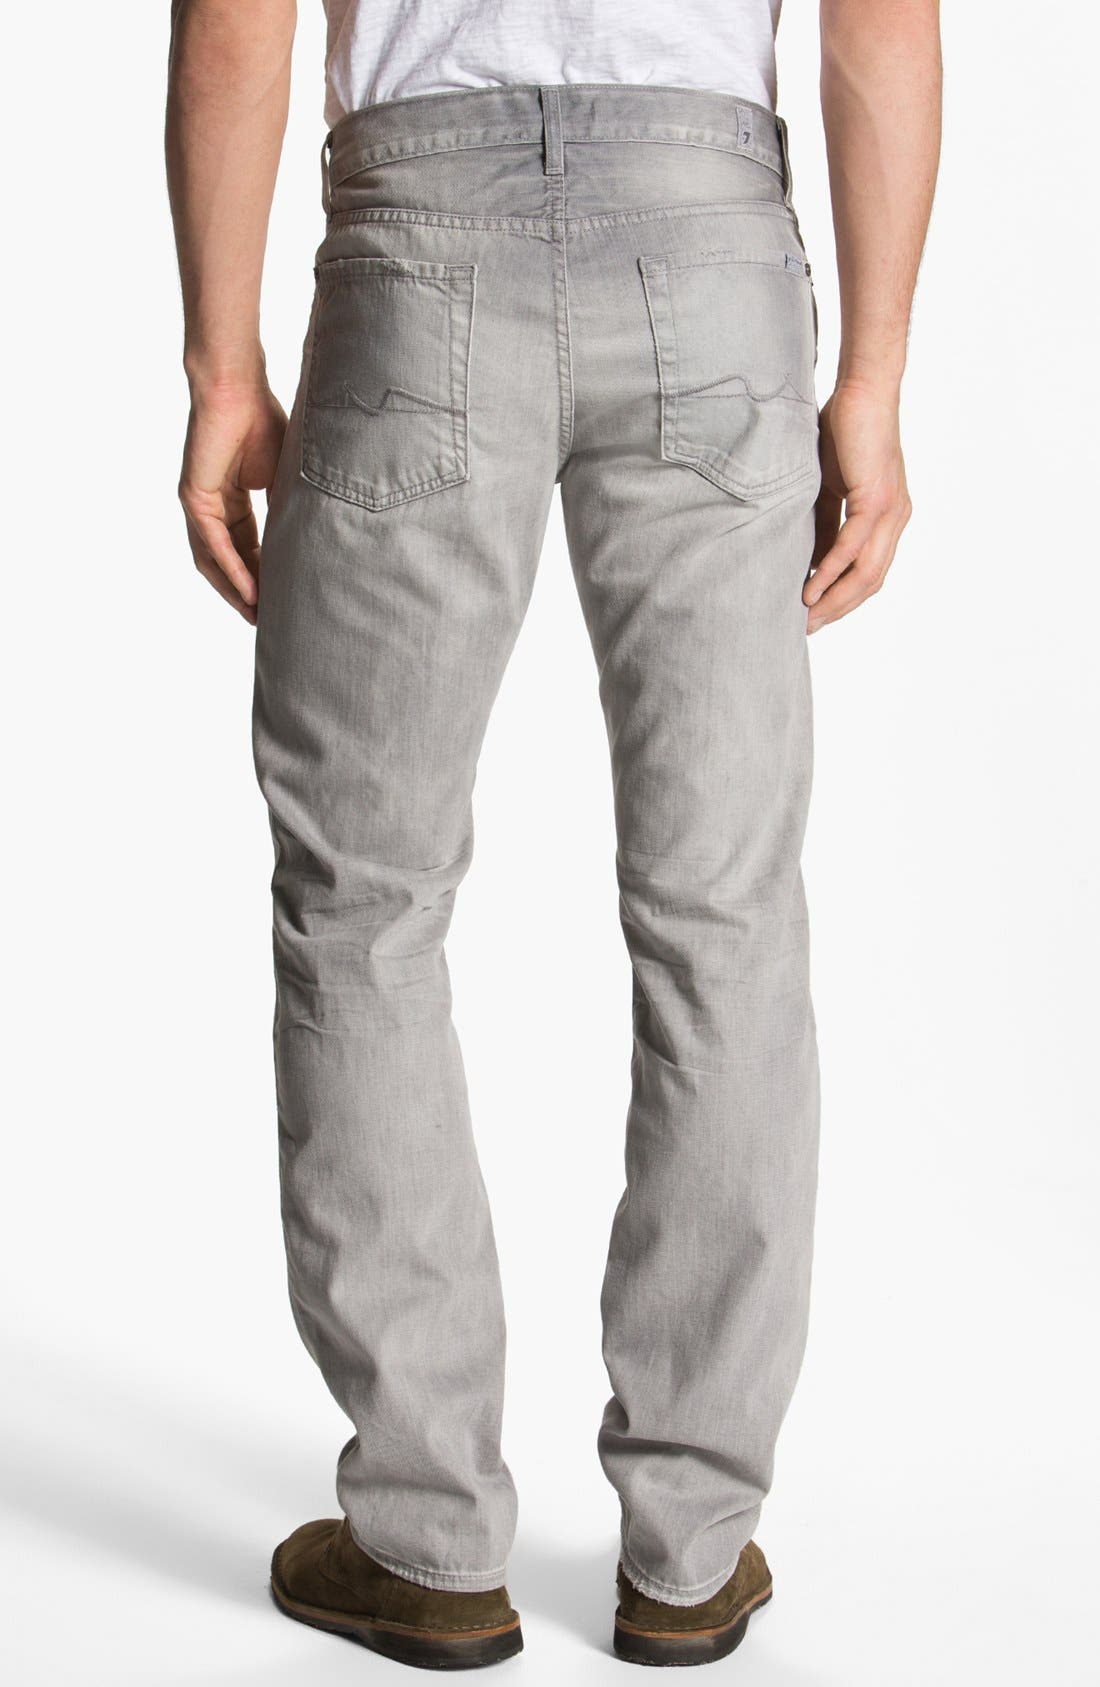 Alternate Image 1 Selected - 7 For All Mankind 'Slimmy' Slim Fit Jeans (Cottage Grove)